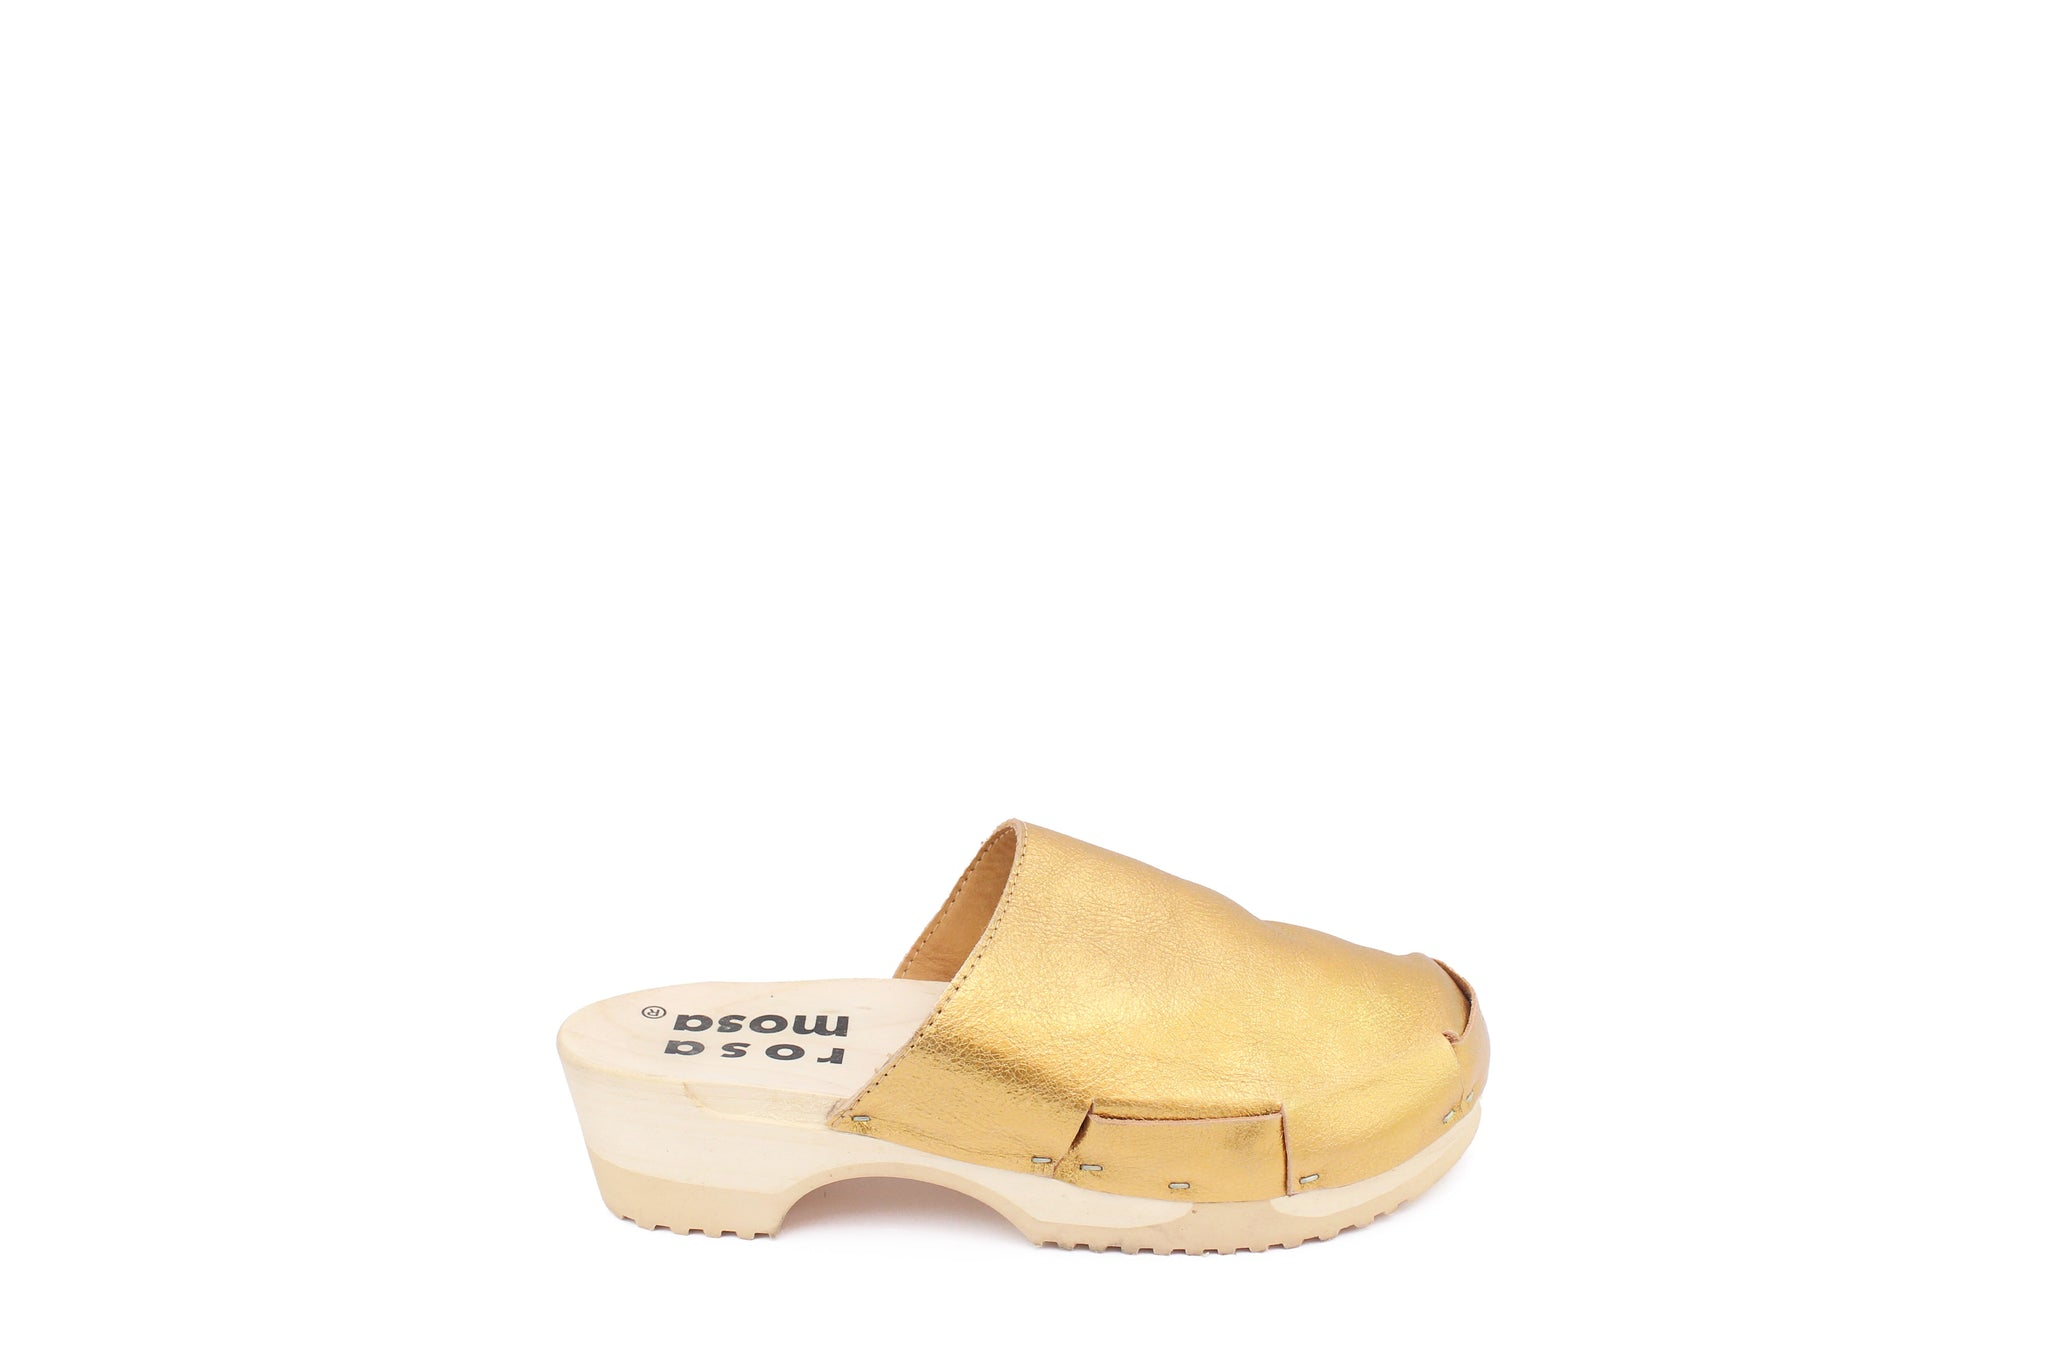 DONAU CLOG METALLIC SIMPLE GOLD